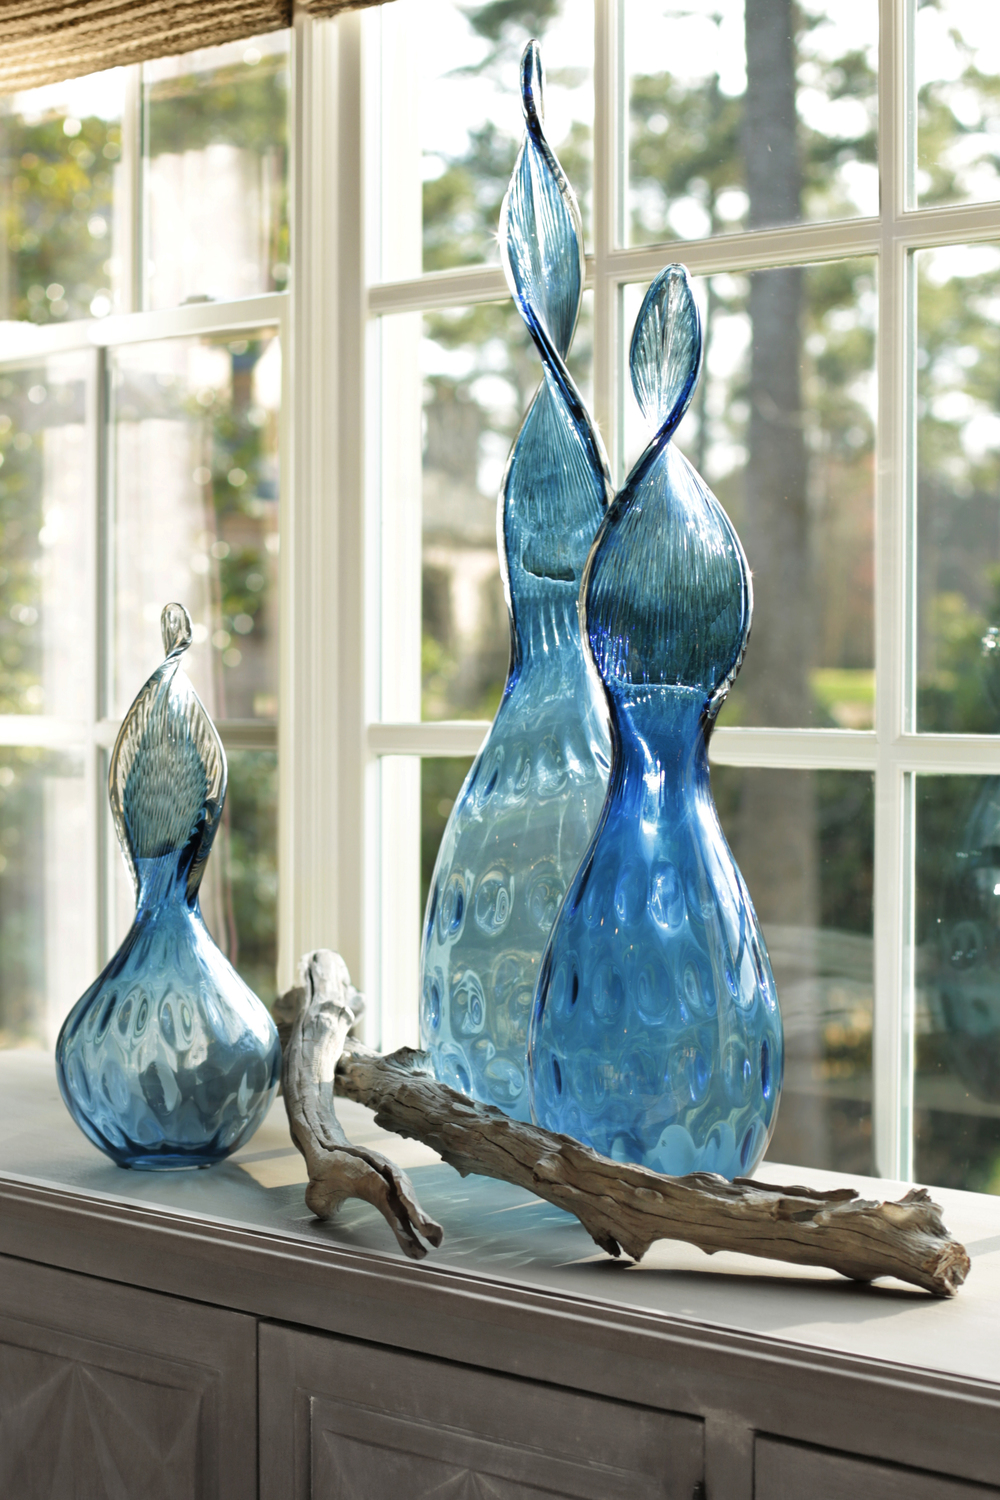 Art Glass Accessories for Outrageous Interiors, Atlanta, GA